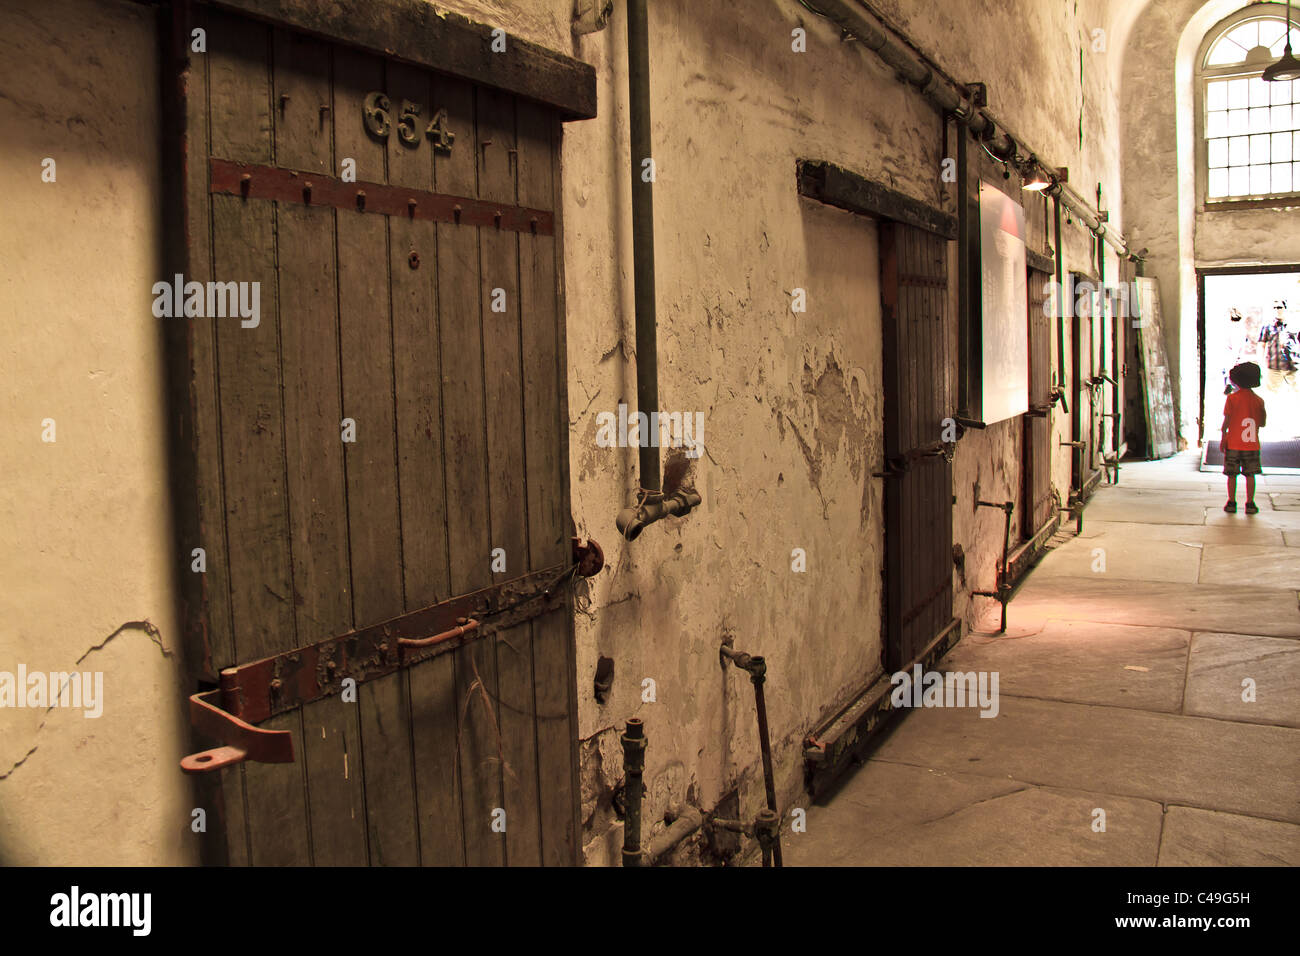 A cellblock that is open to tourists at Eastern State Penitentiary. - Stock Image